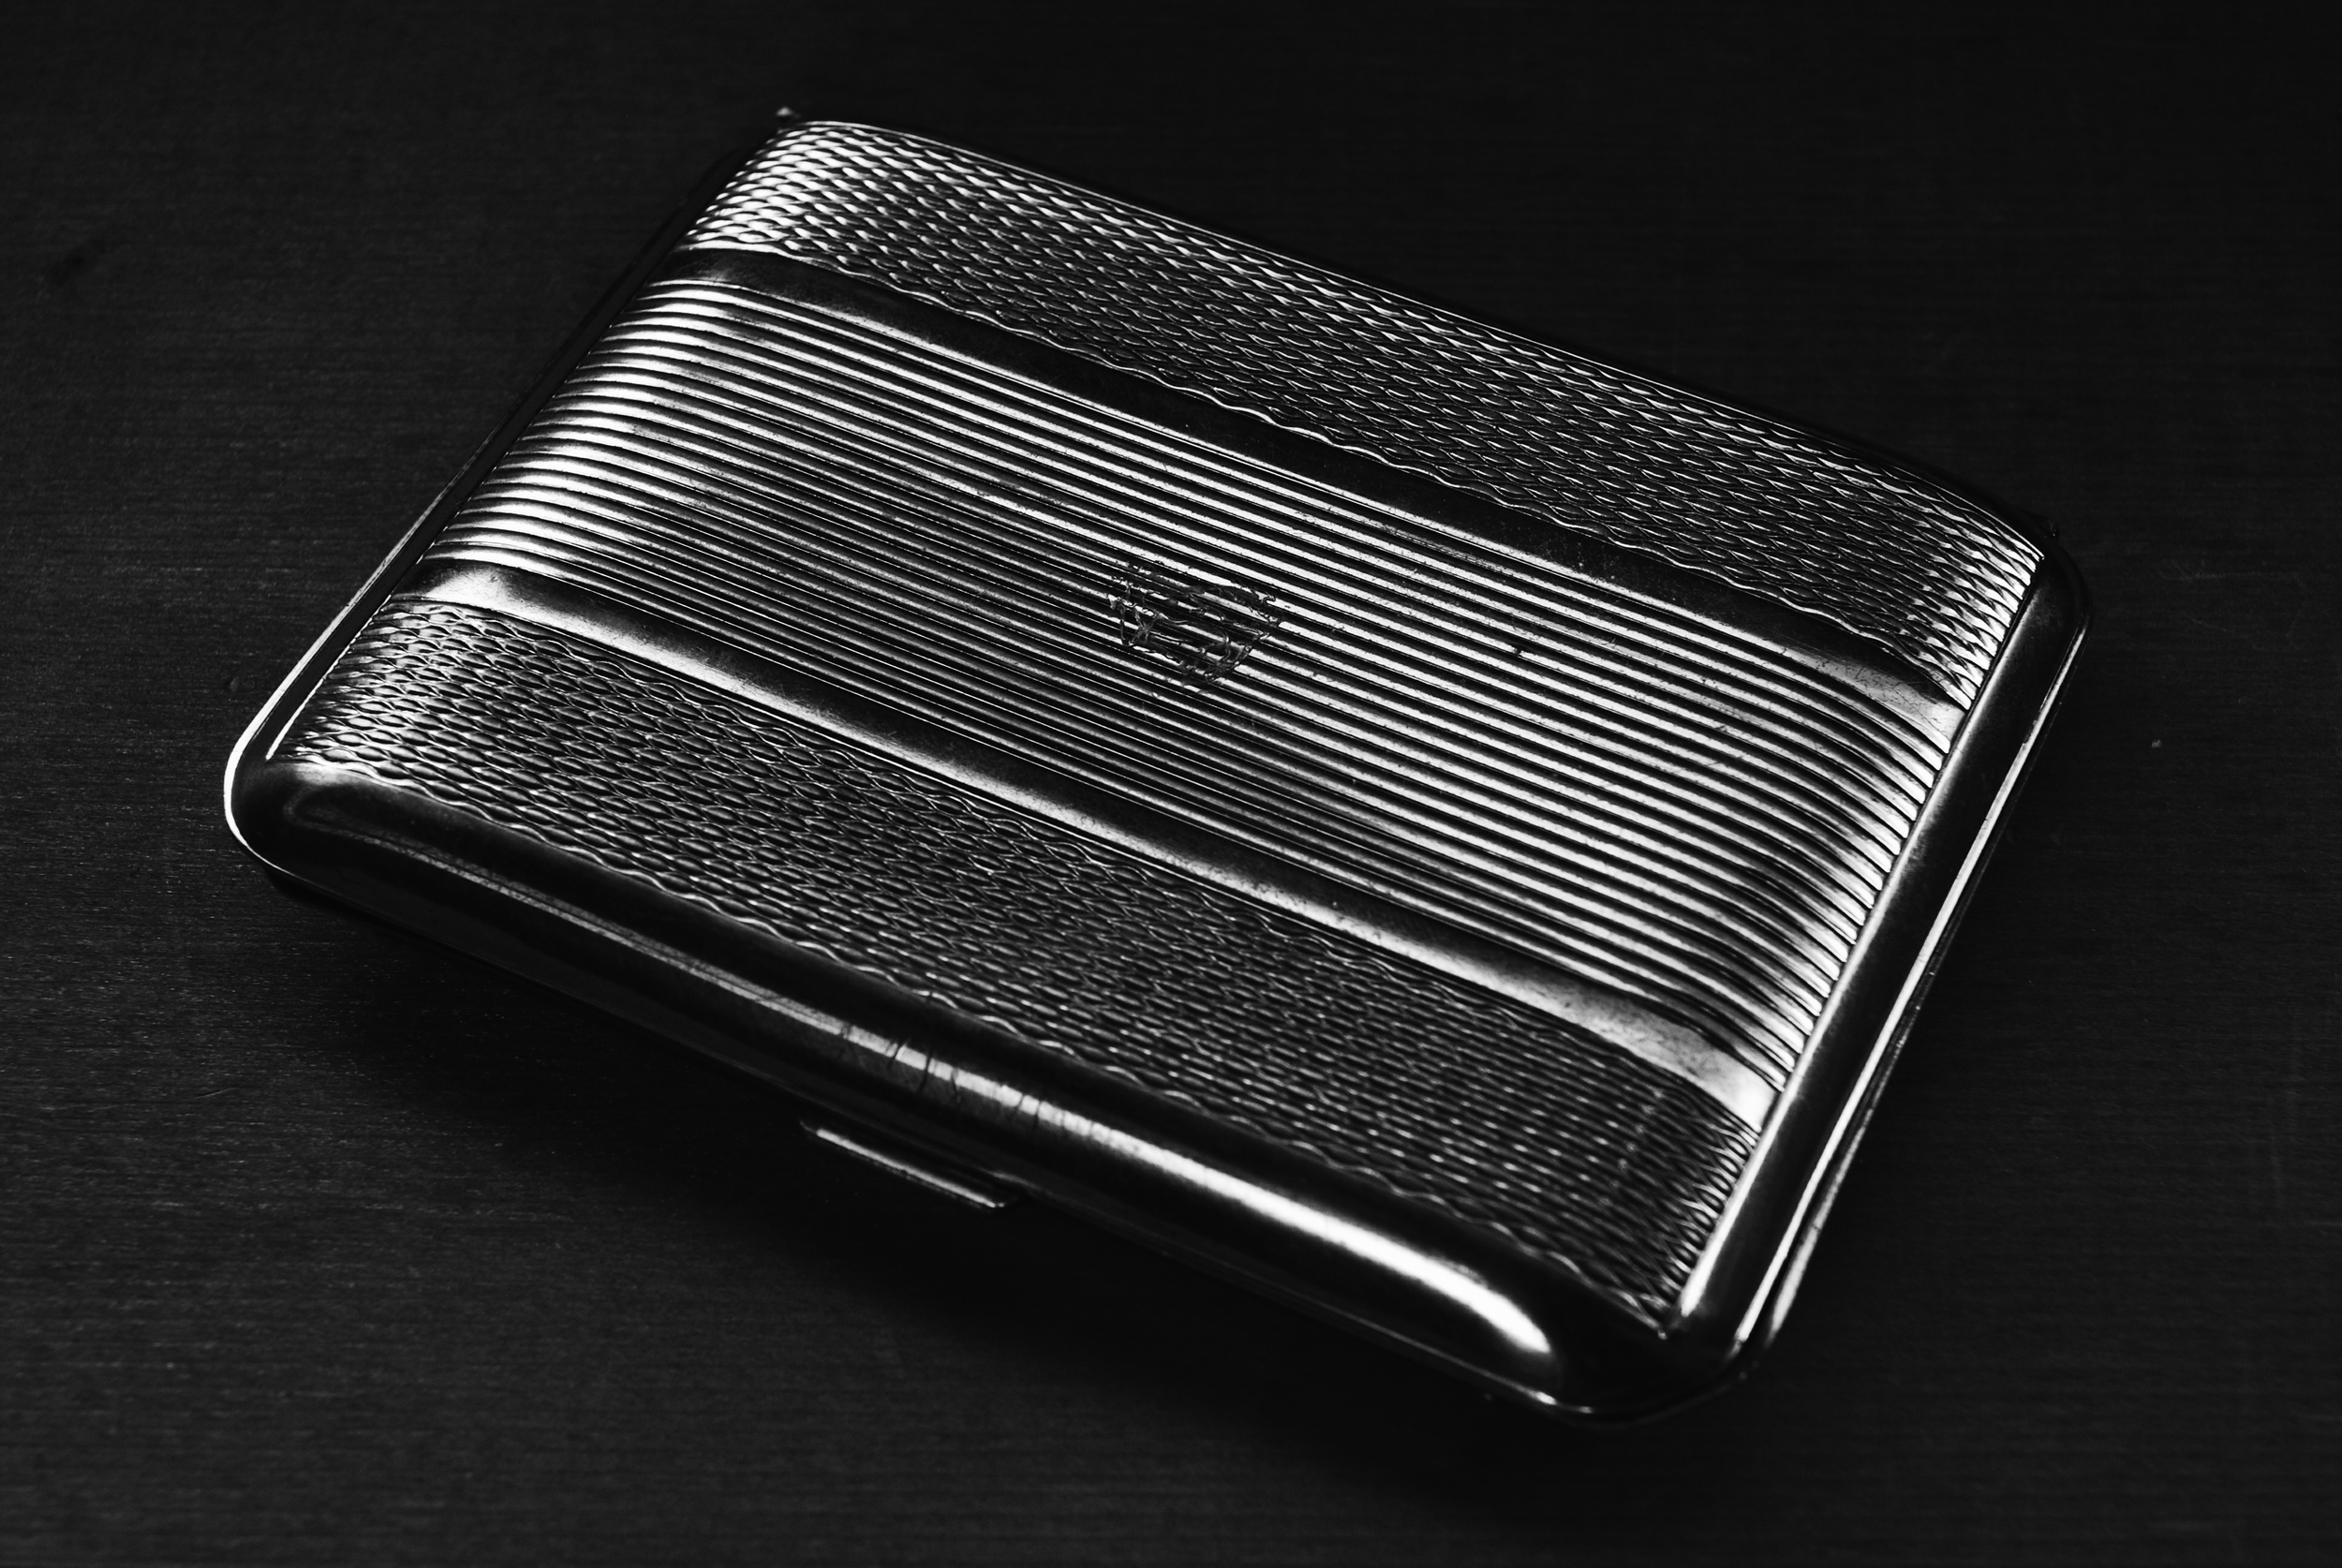 Cigarette case belonging to a great-uncle